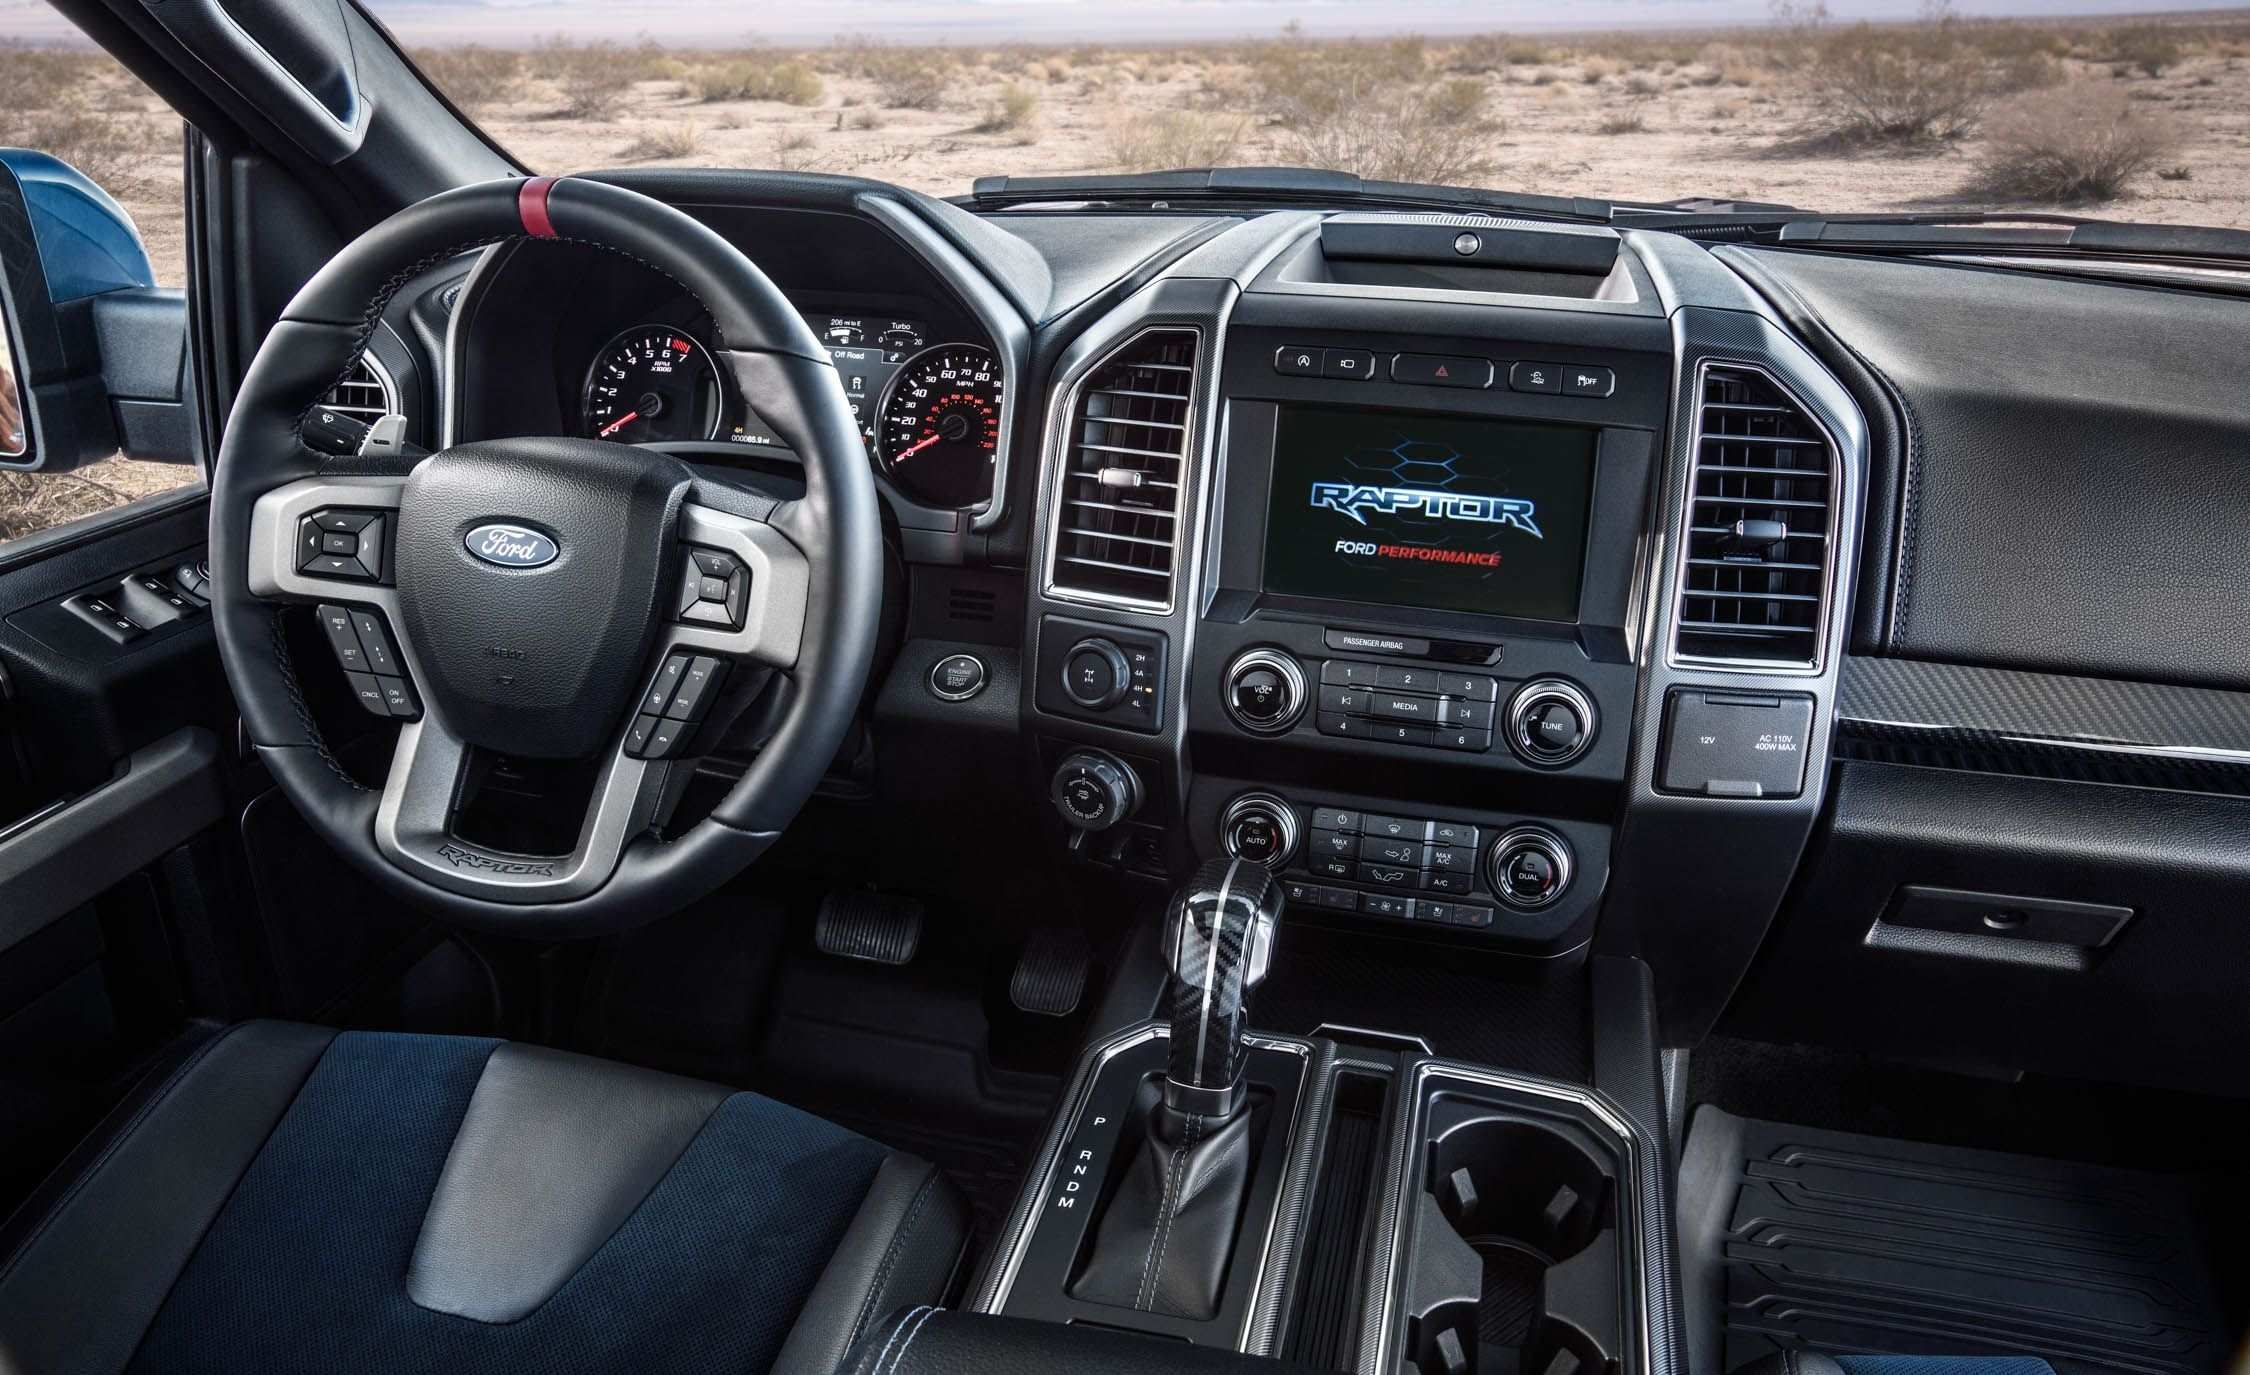 99 New Ford 2019 Interior Picture Release Date And Review Specs and Review for Ford 2019 Interior Picture Release Date And Review